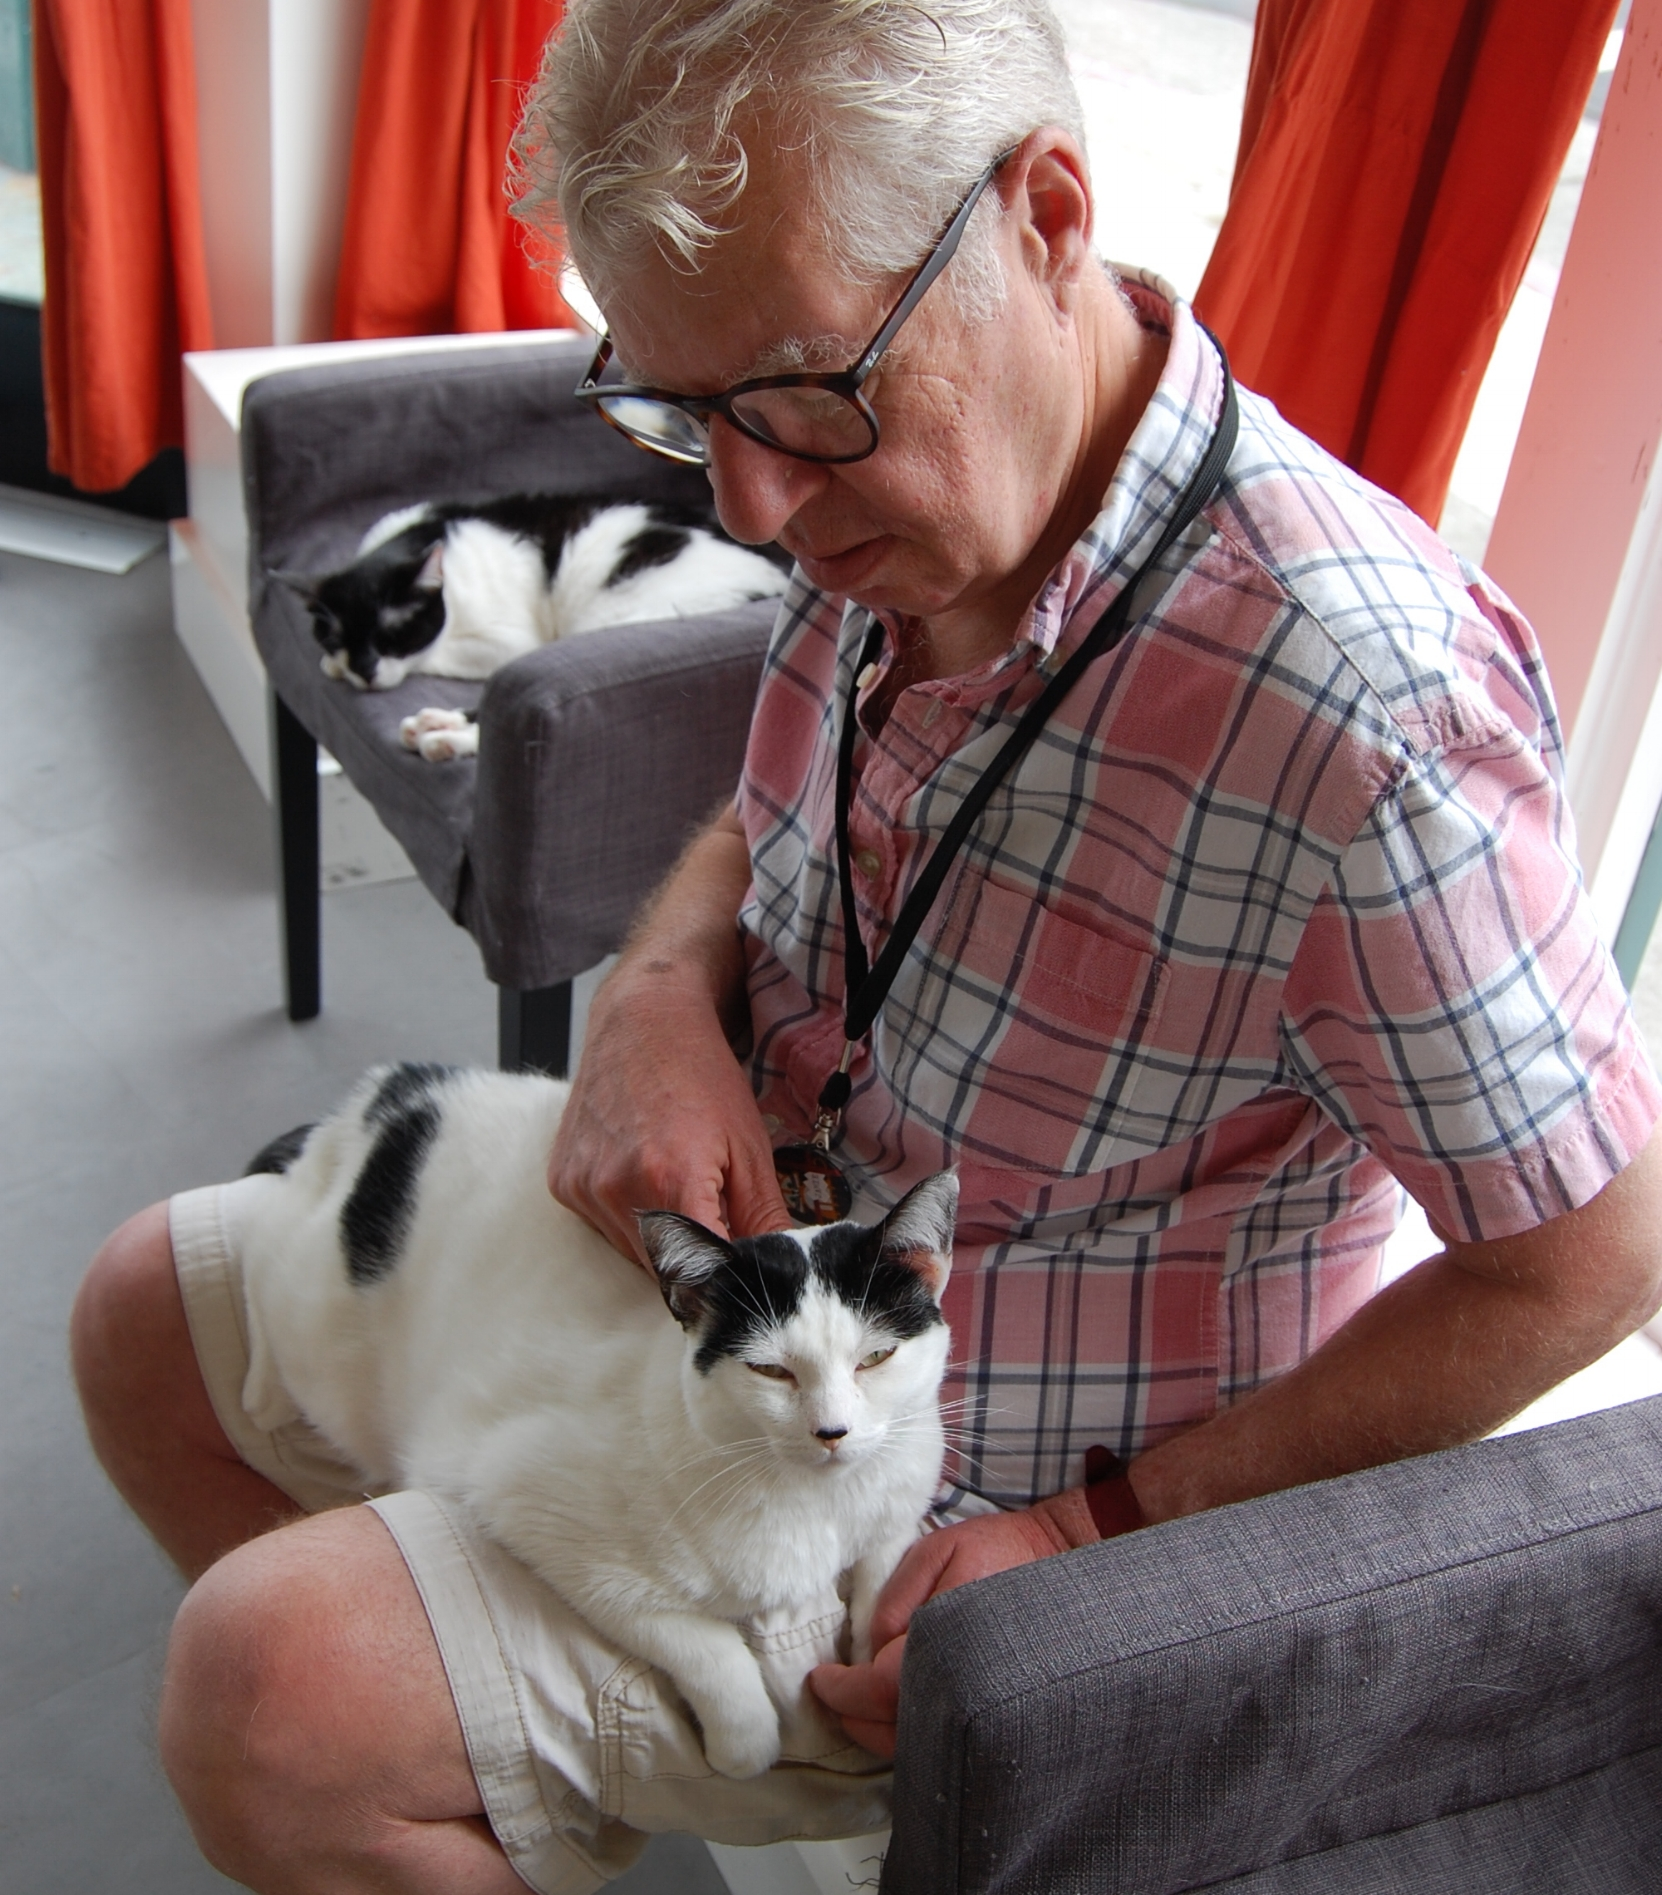 Jamie enjoys a quiet moment with lap cat Molly before the Cat Zone opens for the day.